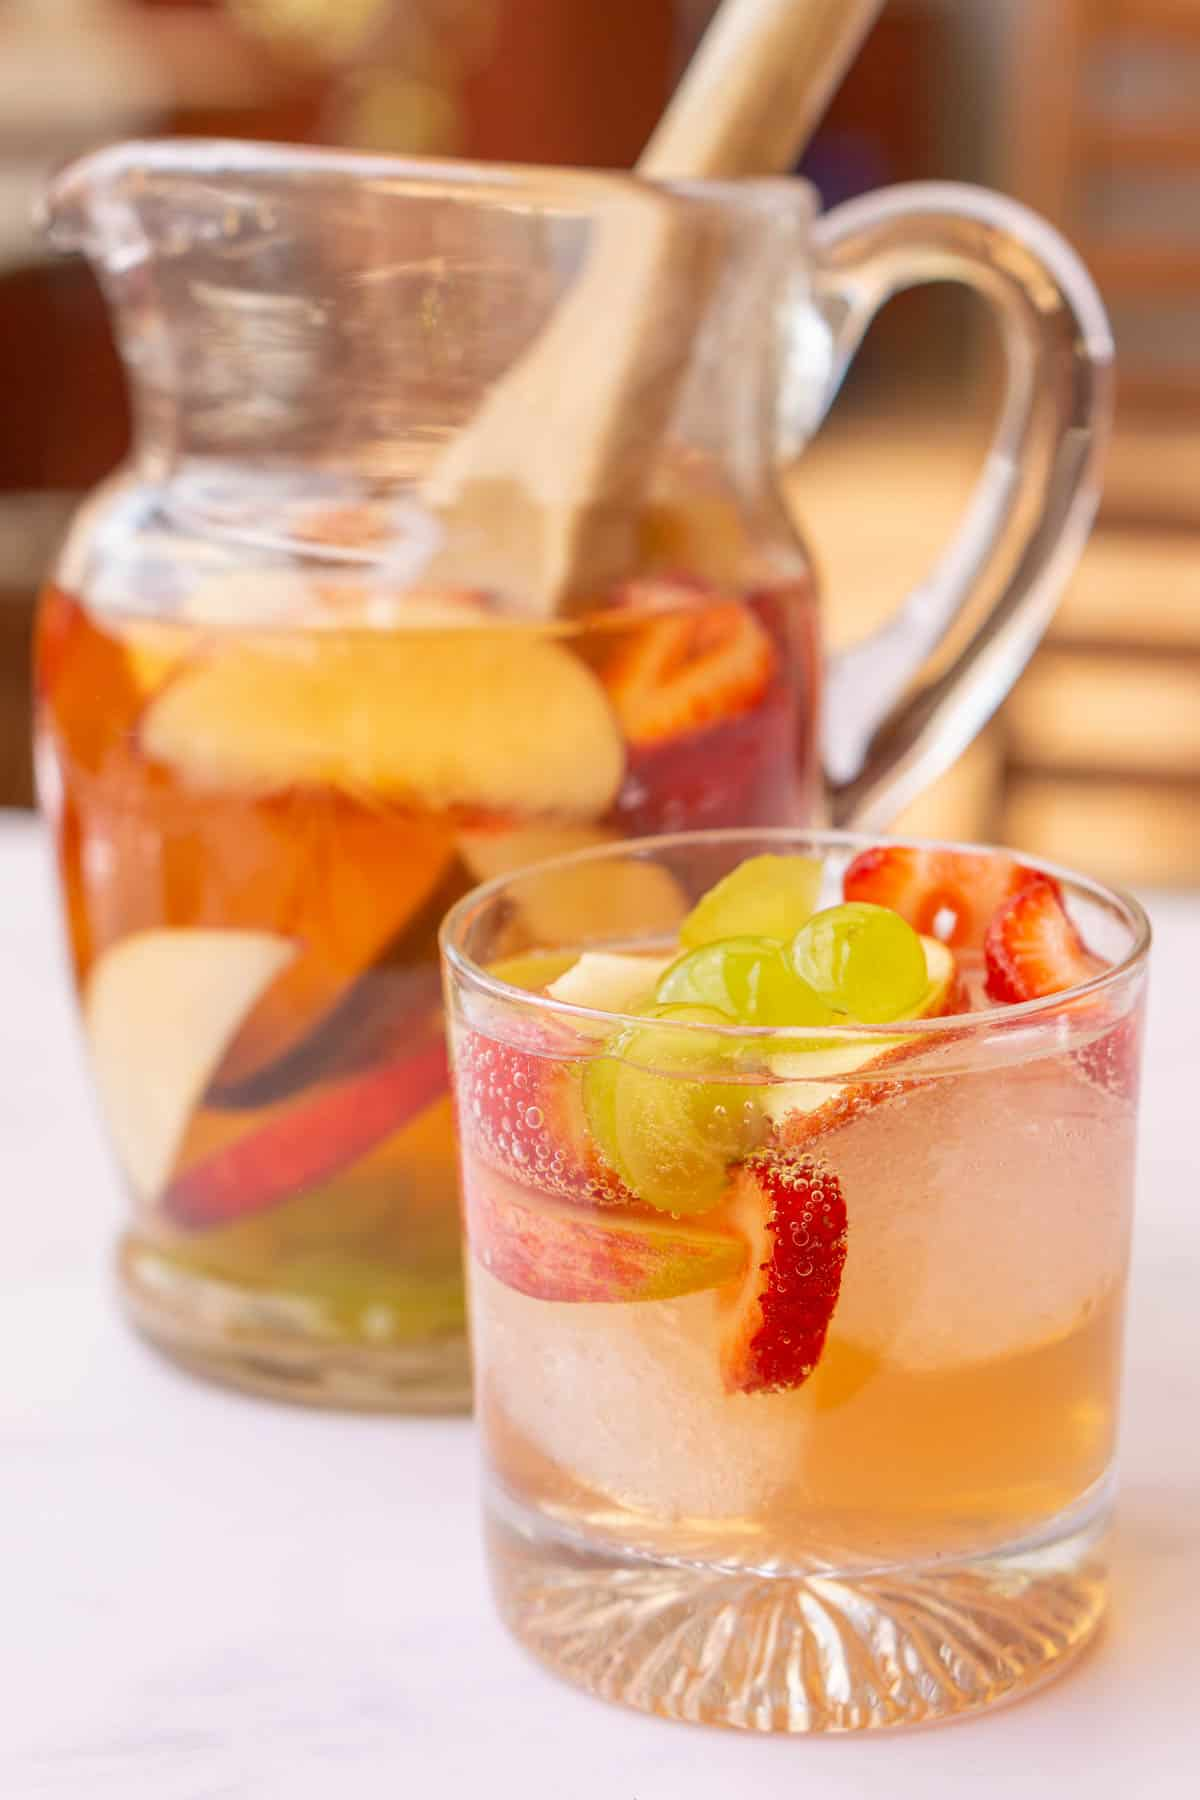 White Wine sangria in a glass pitcher with a wooden spoon. A glass of white sangria with ice in front.